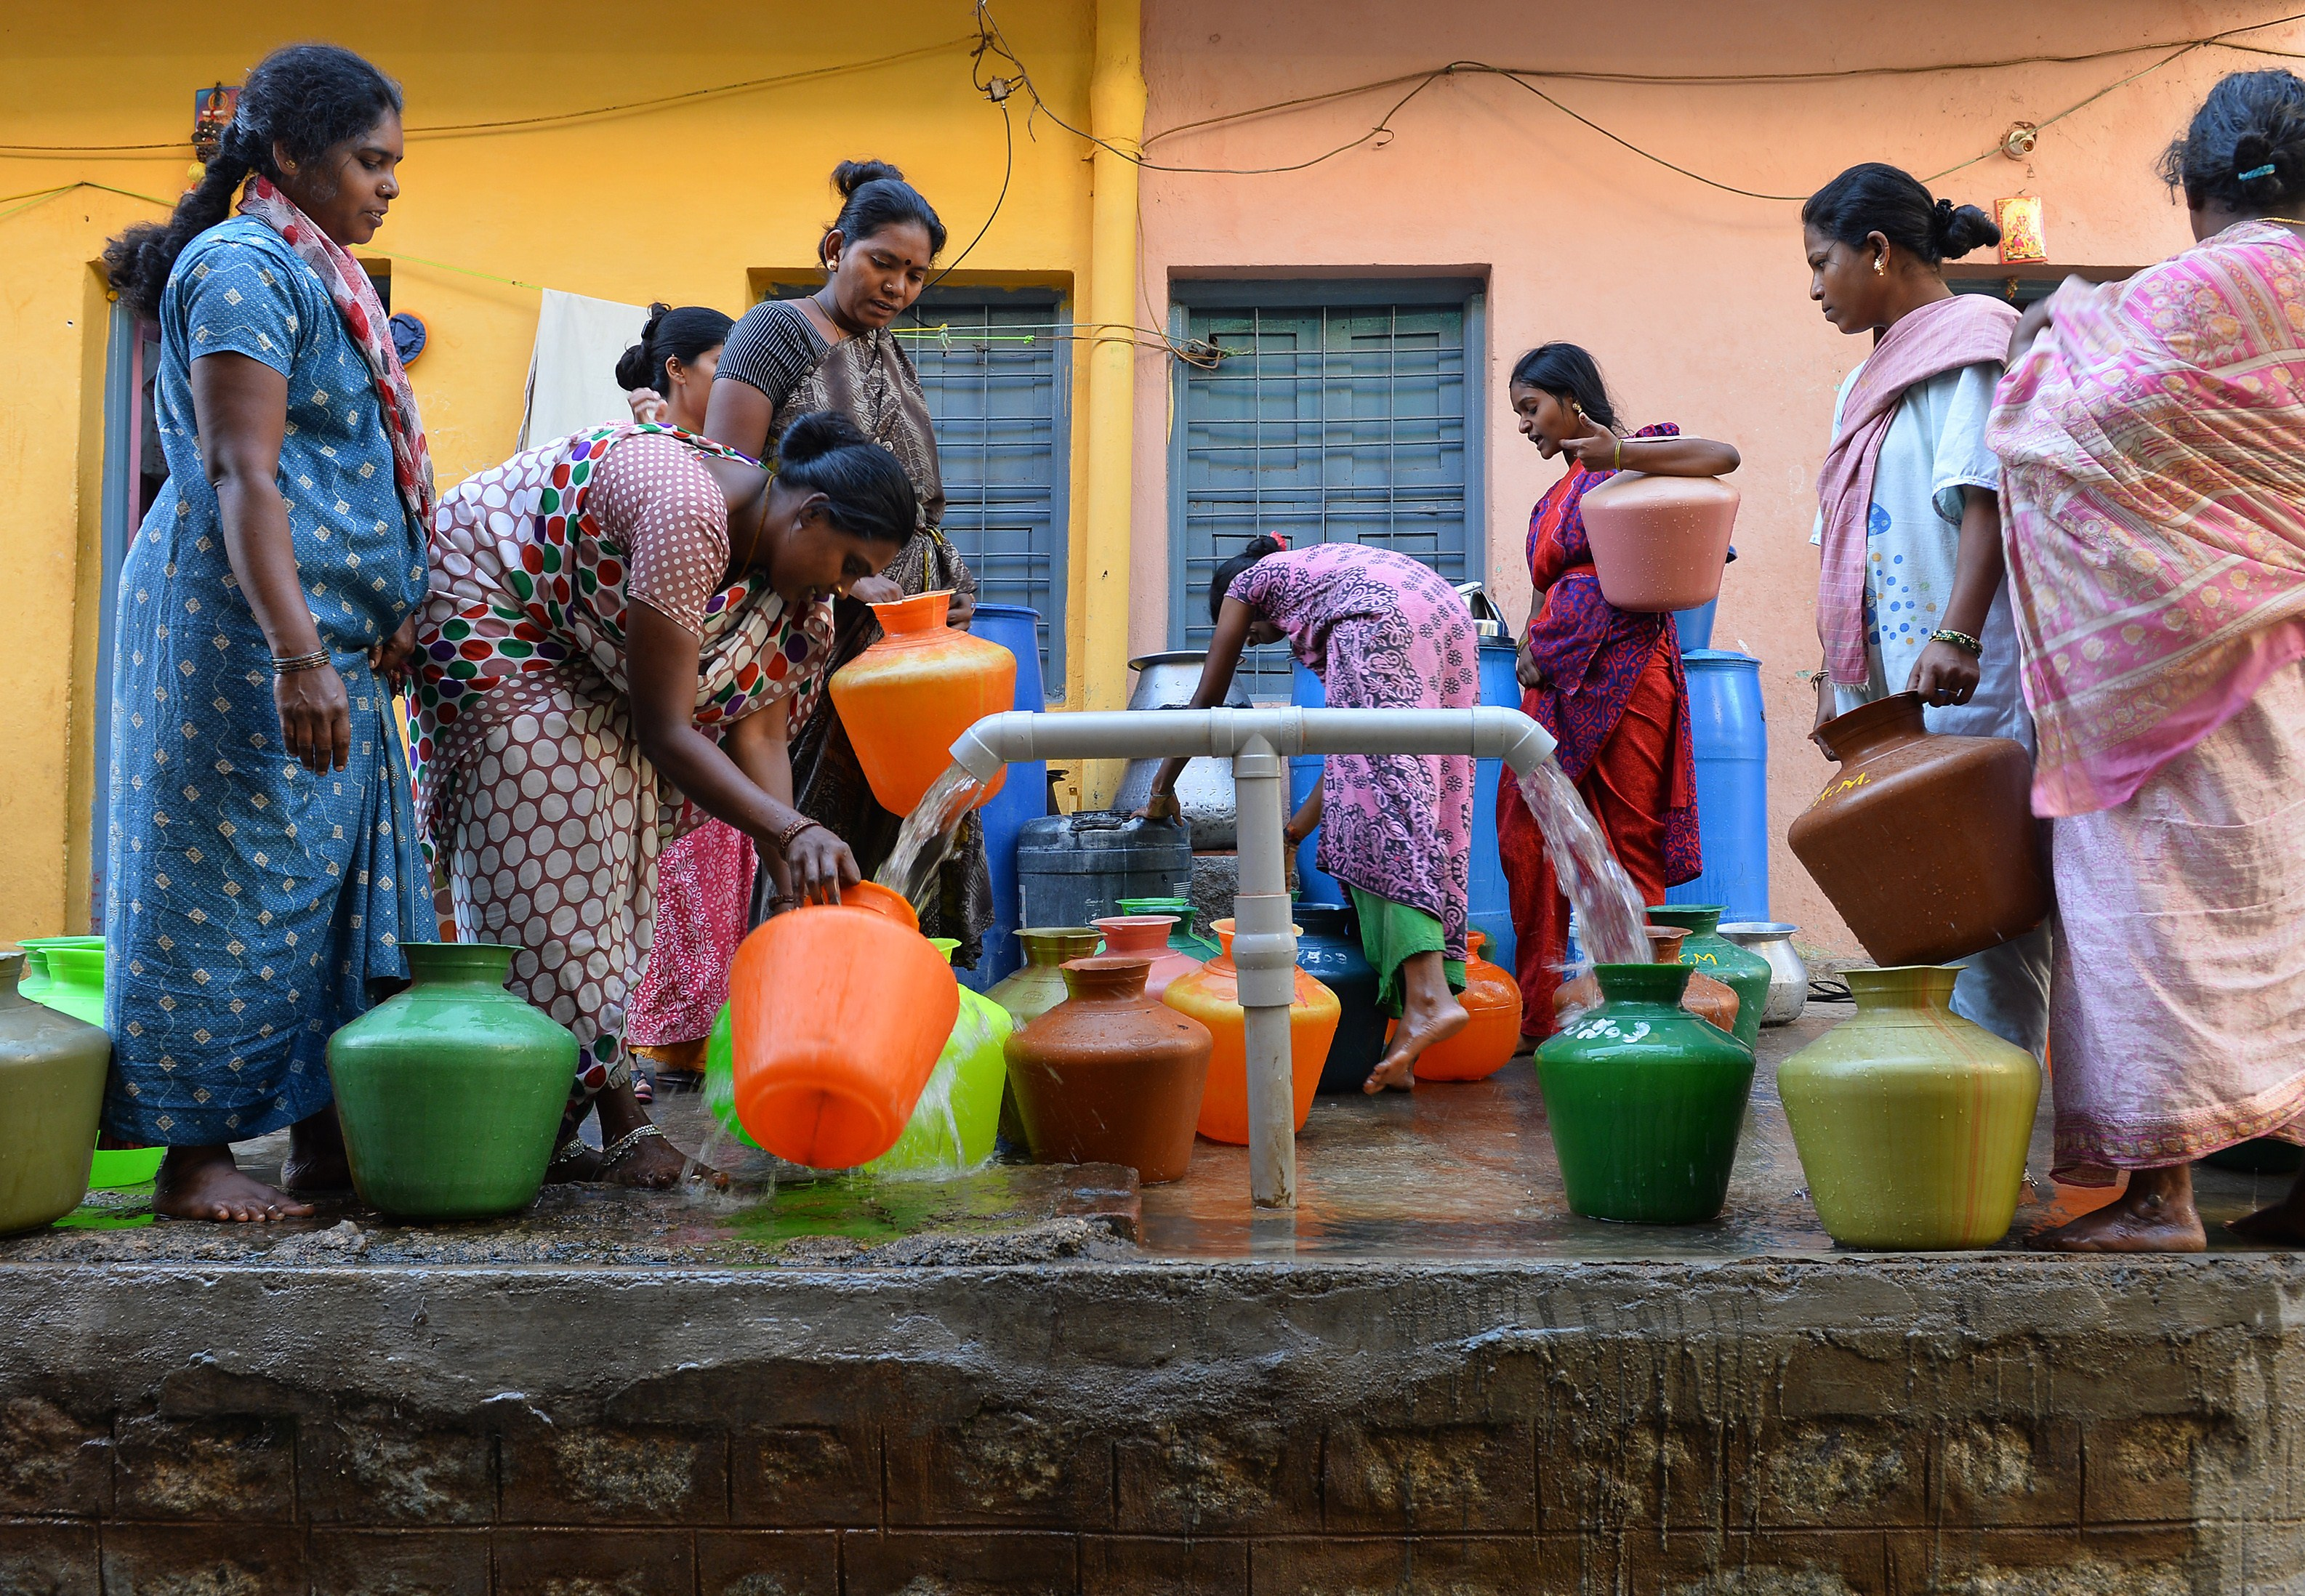 Residents in Bangalore wait to collect drinking water in plastic pots for their households on March 18, 2015.